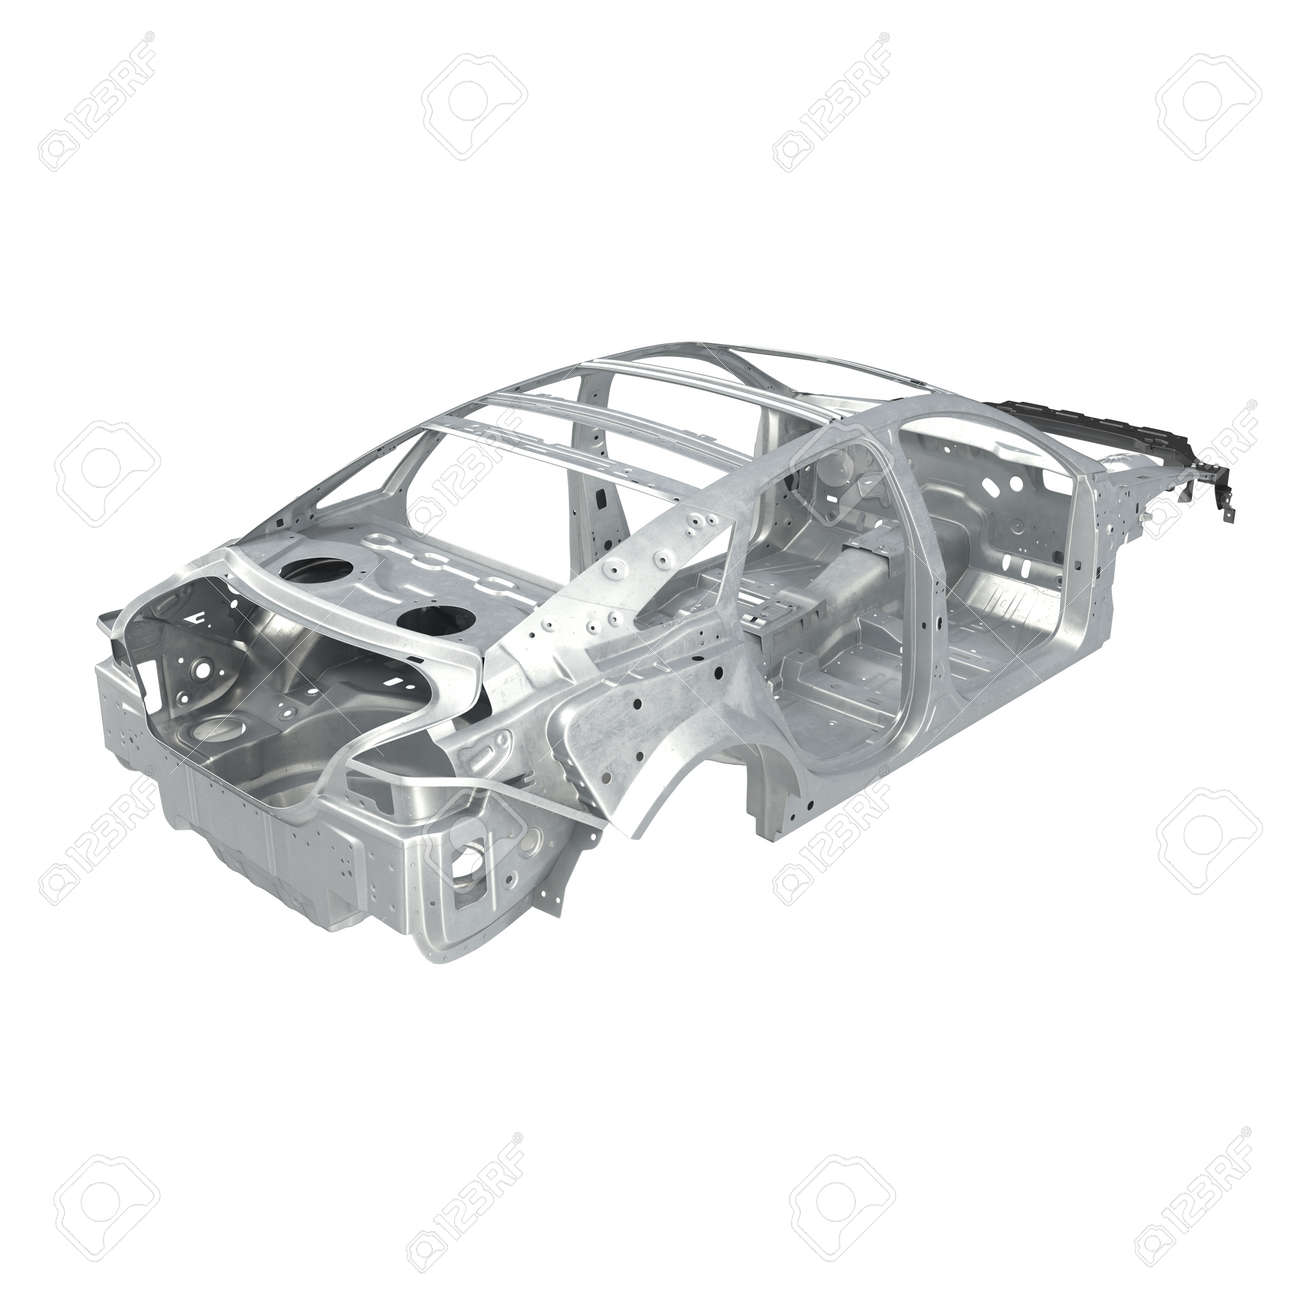 Design of car frame - Car Frame Without Chassis On White Background Angle From Up 3d Illustration Stock Illustration